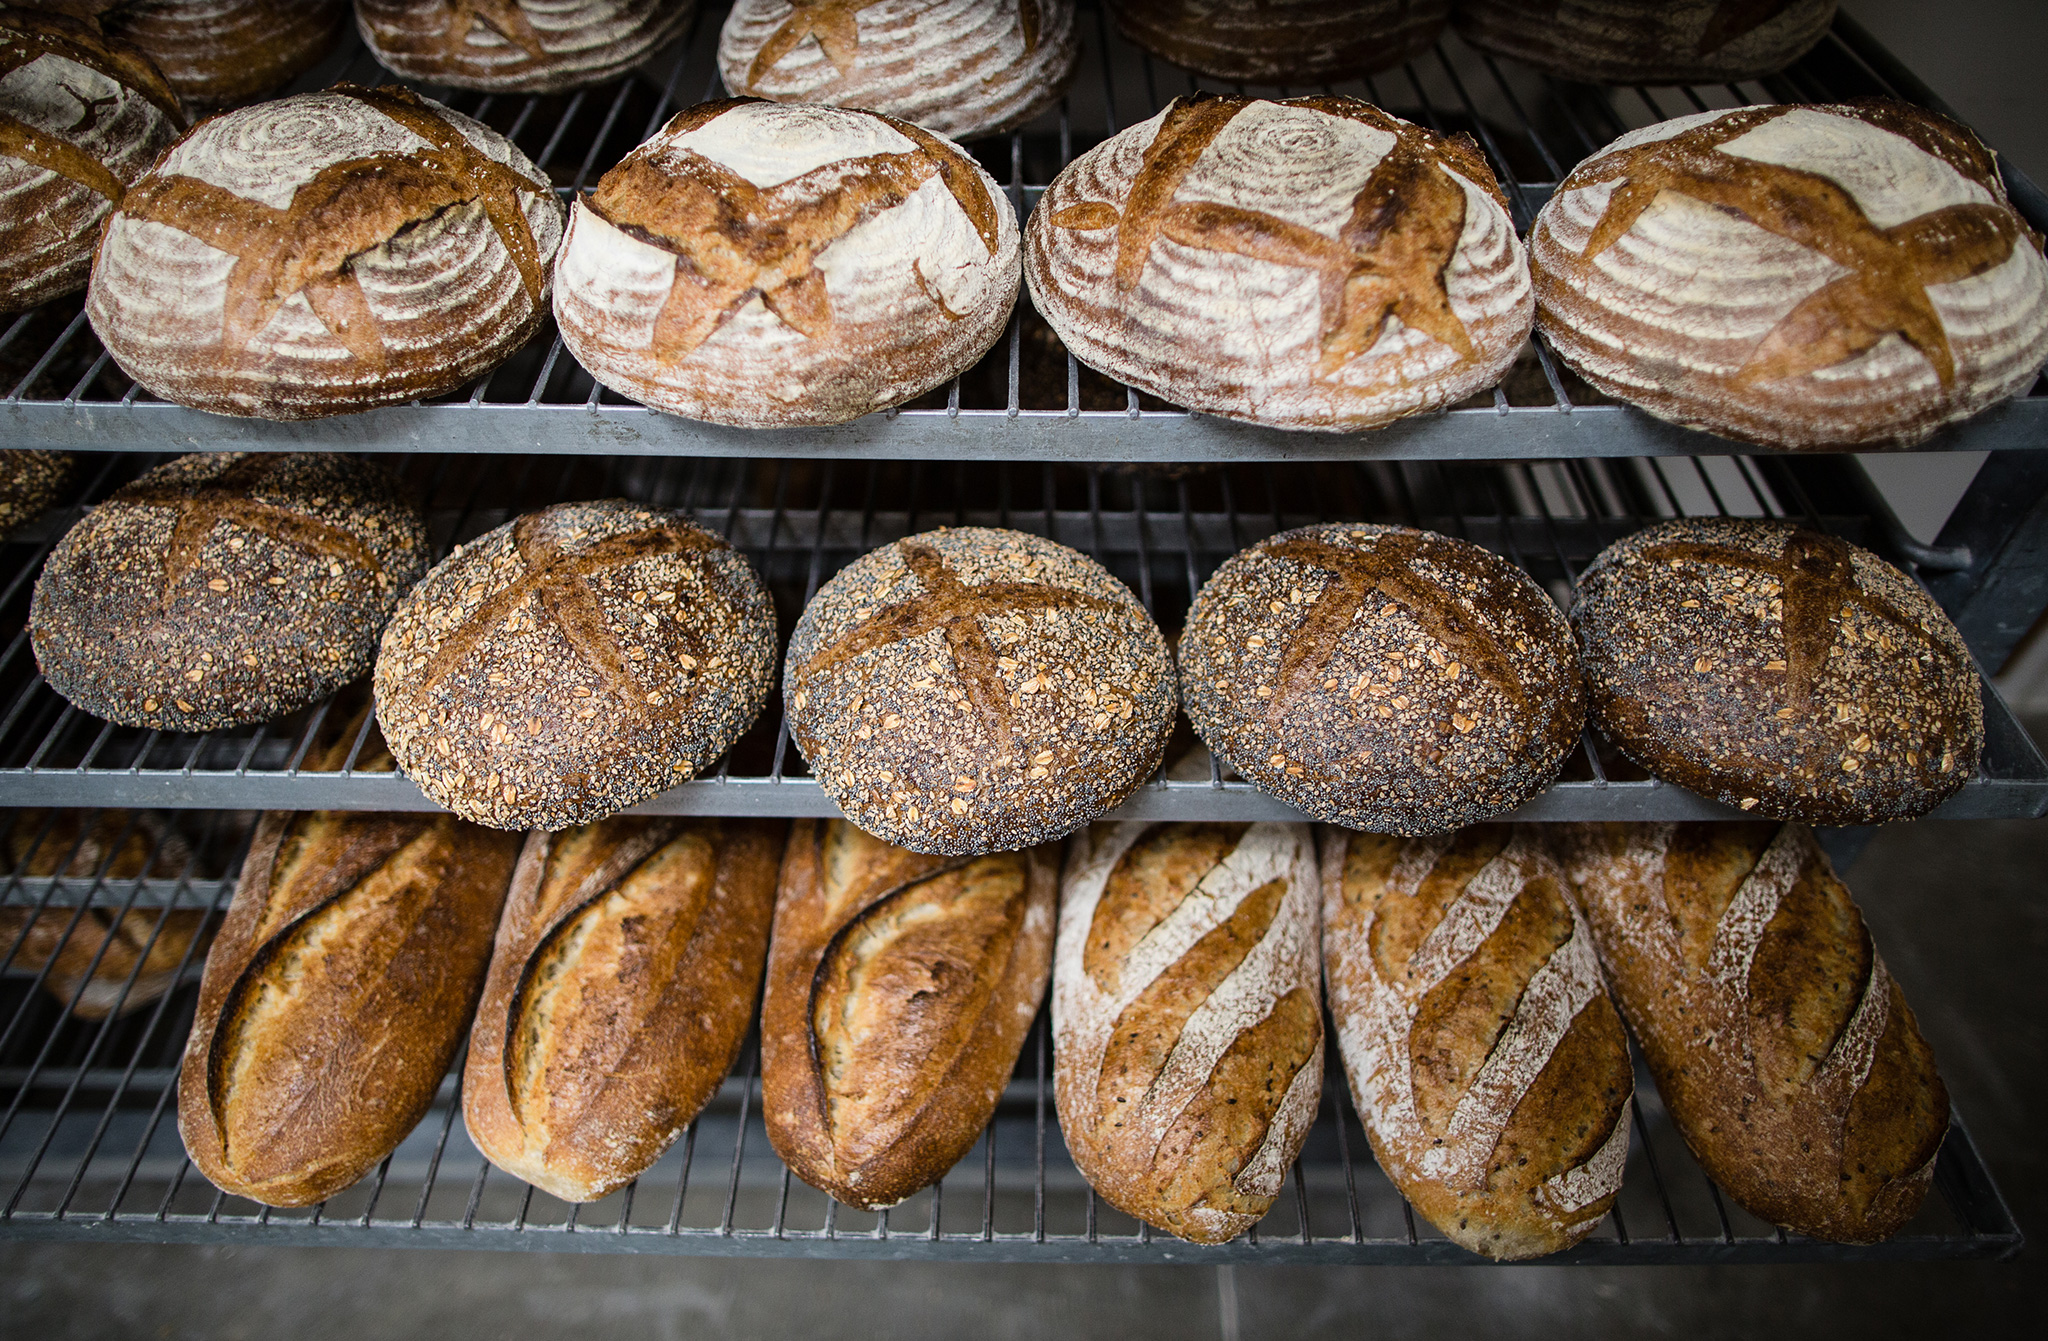 Plant building dietary bread and bakery products